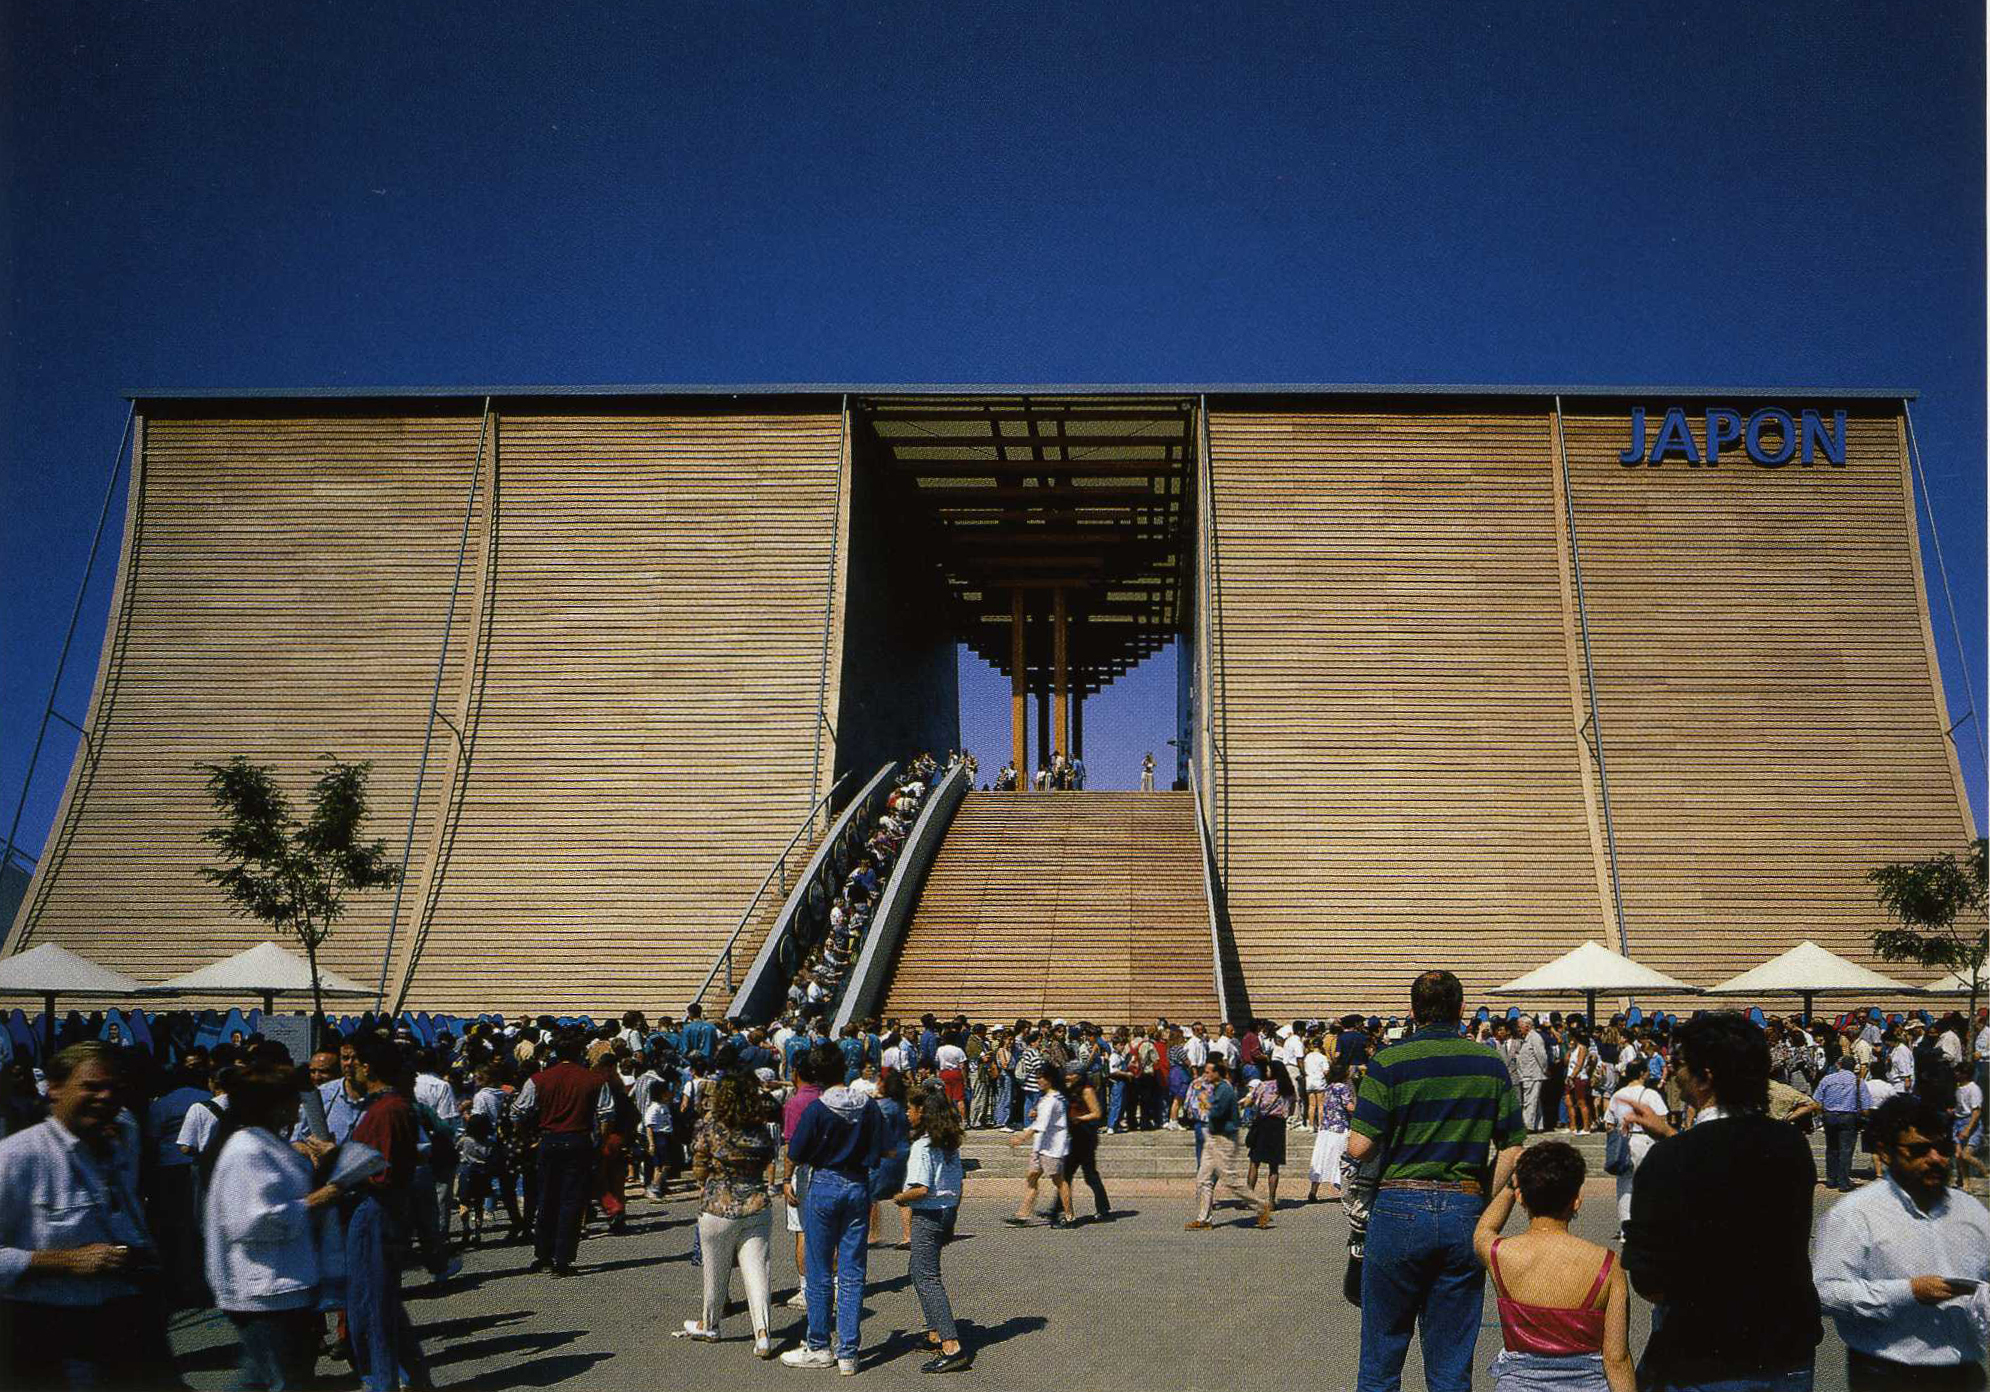 Japanese Pavilion for Expo 92